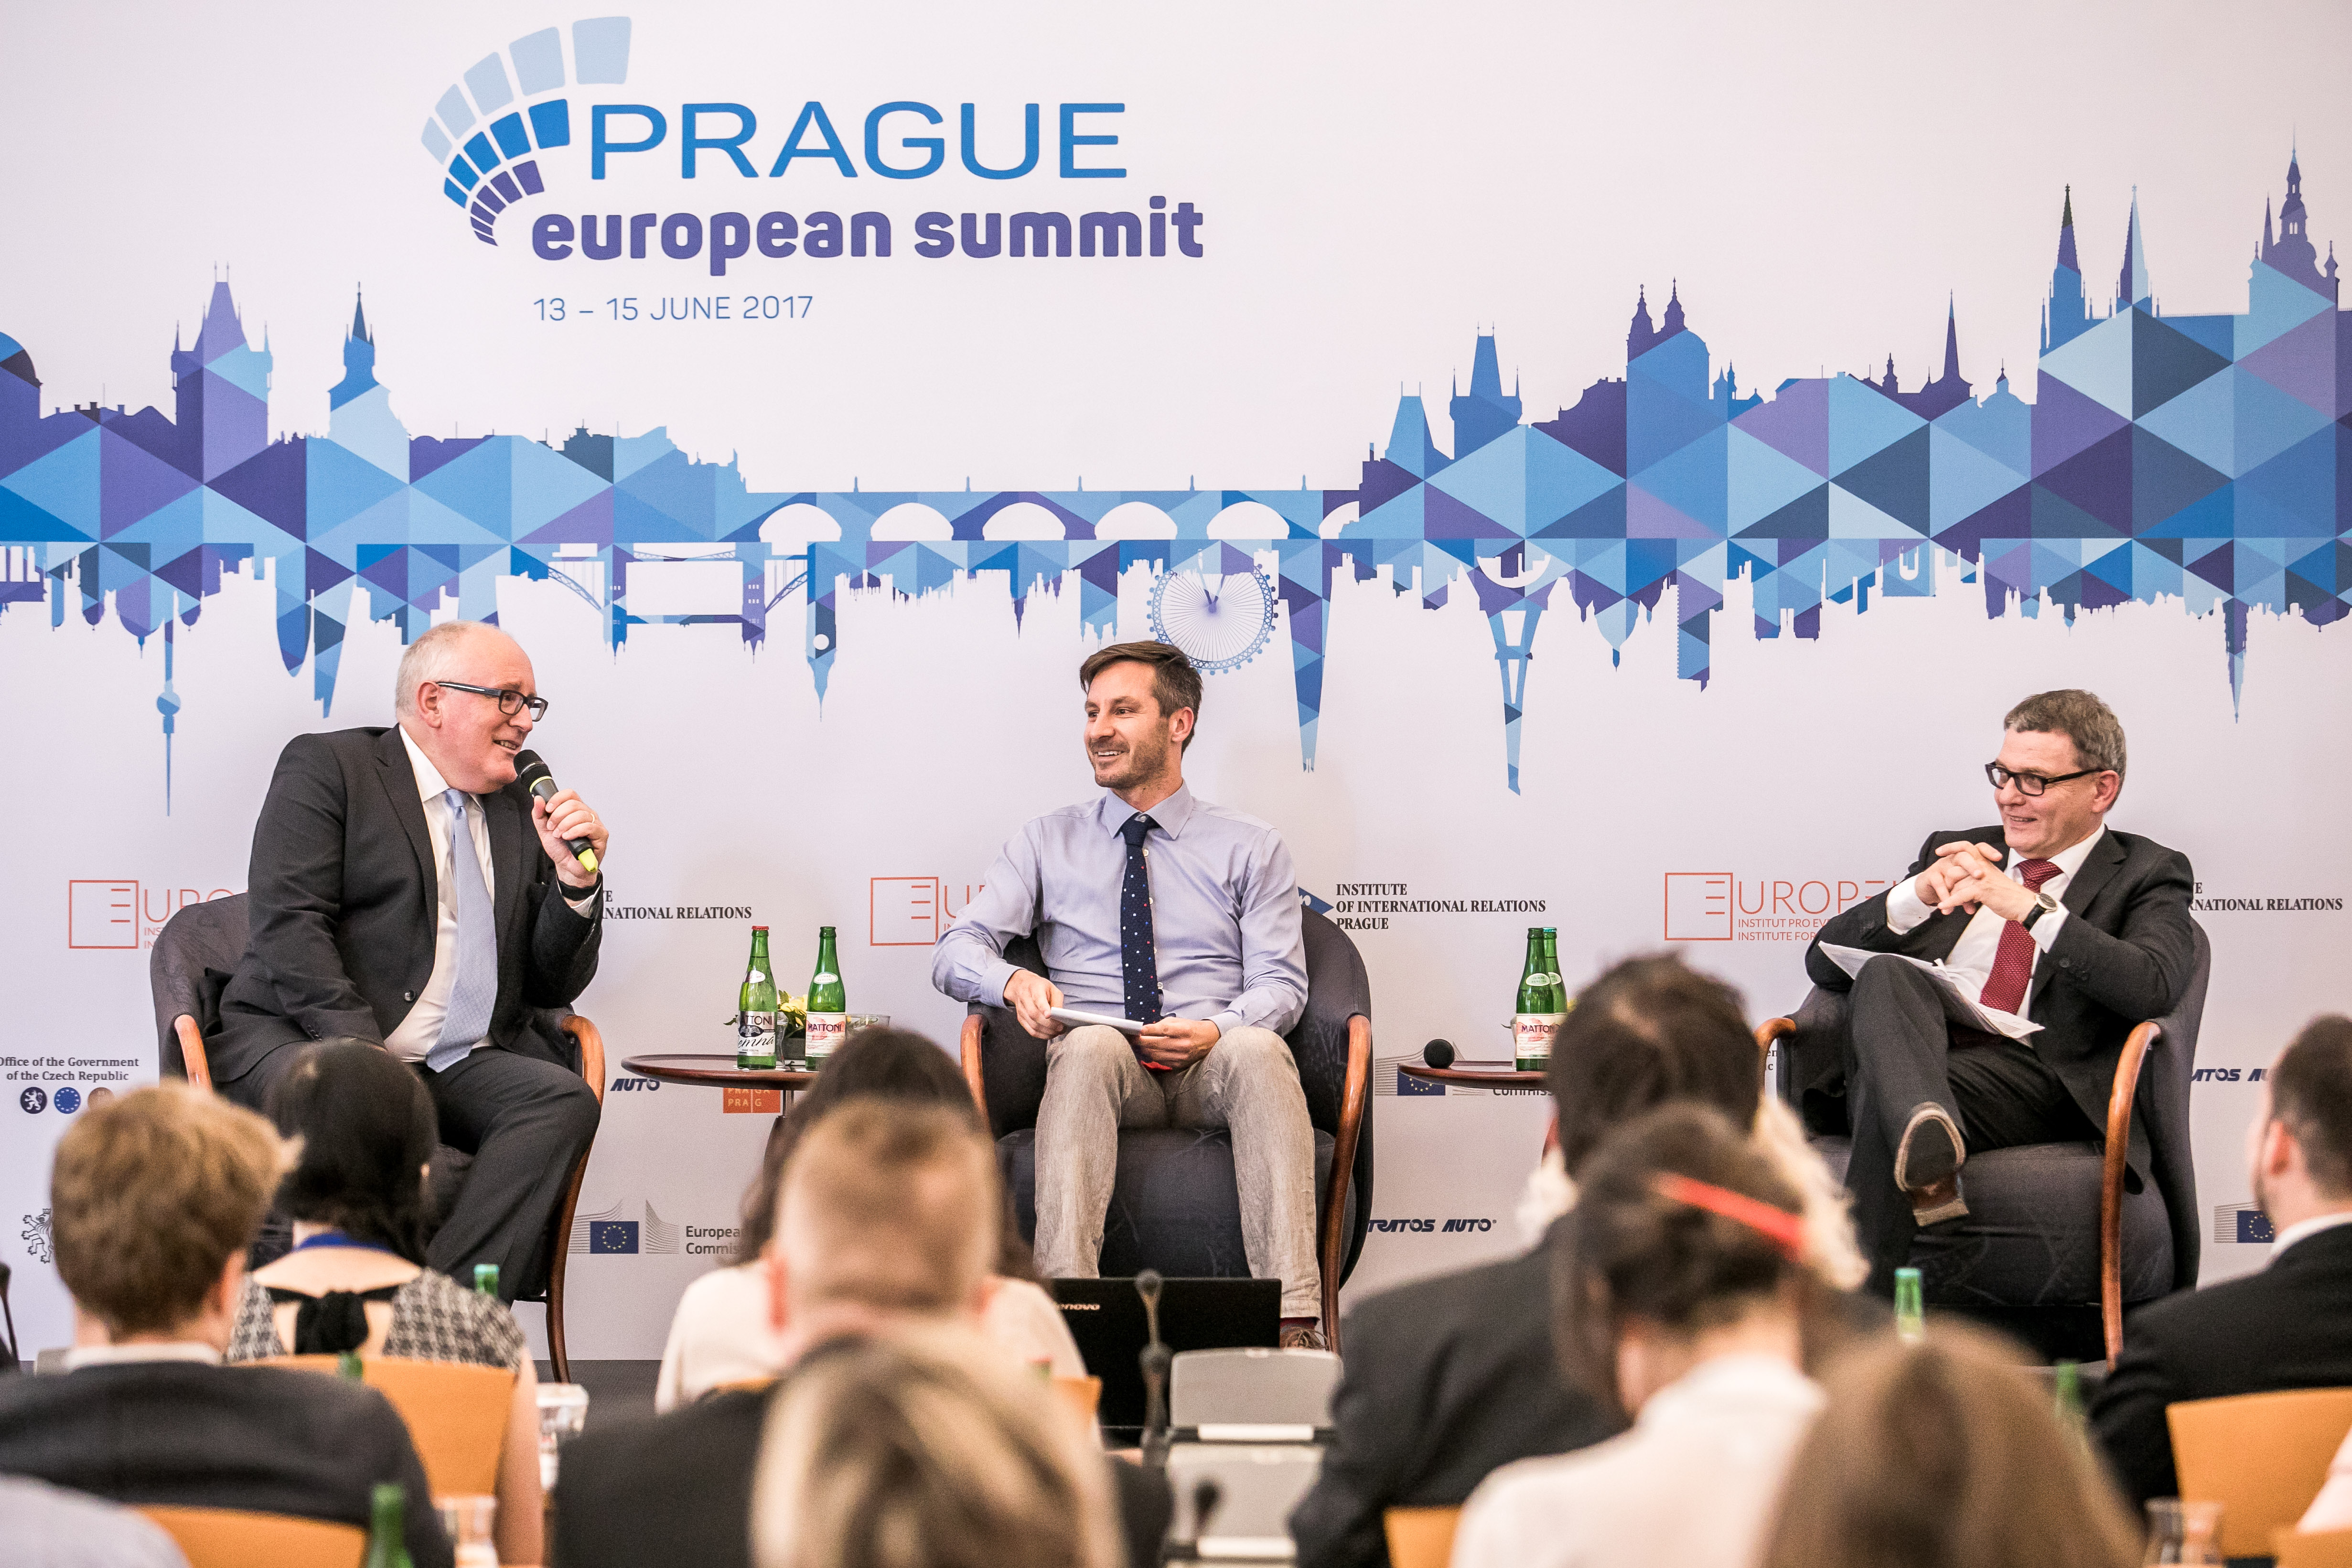 Impresii de la Prague European Summit 2017